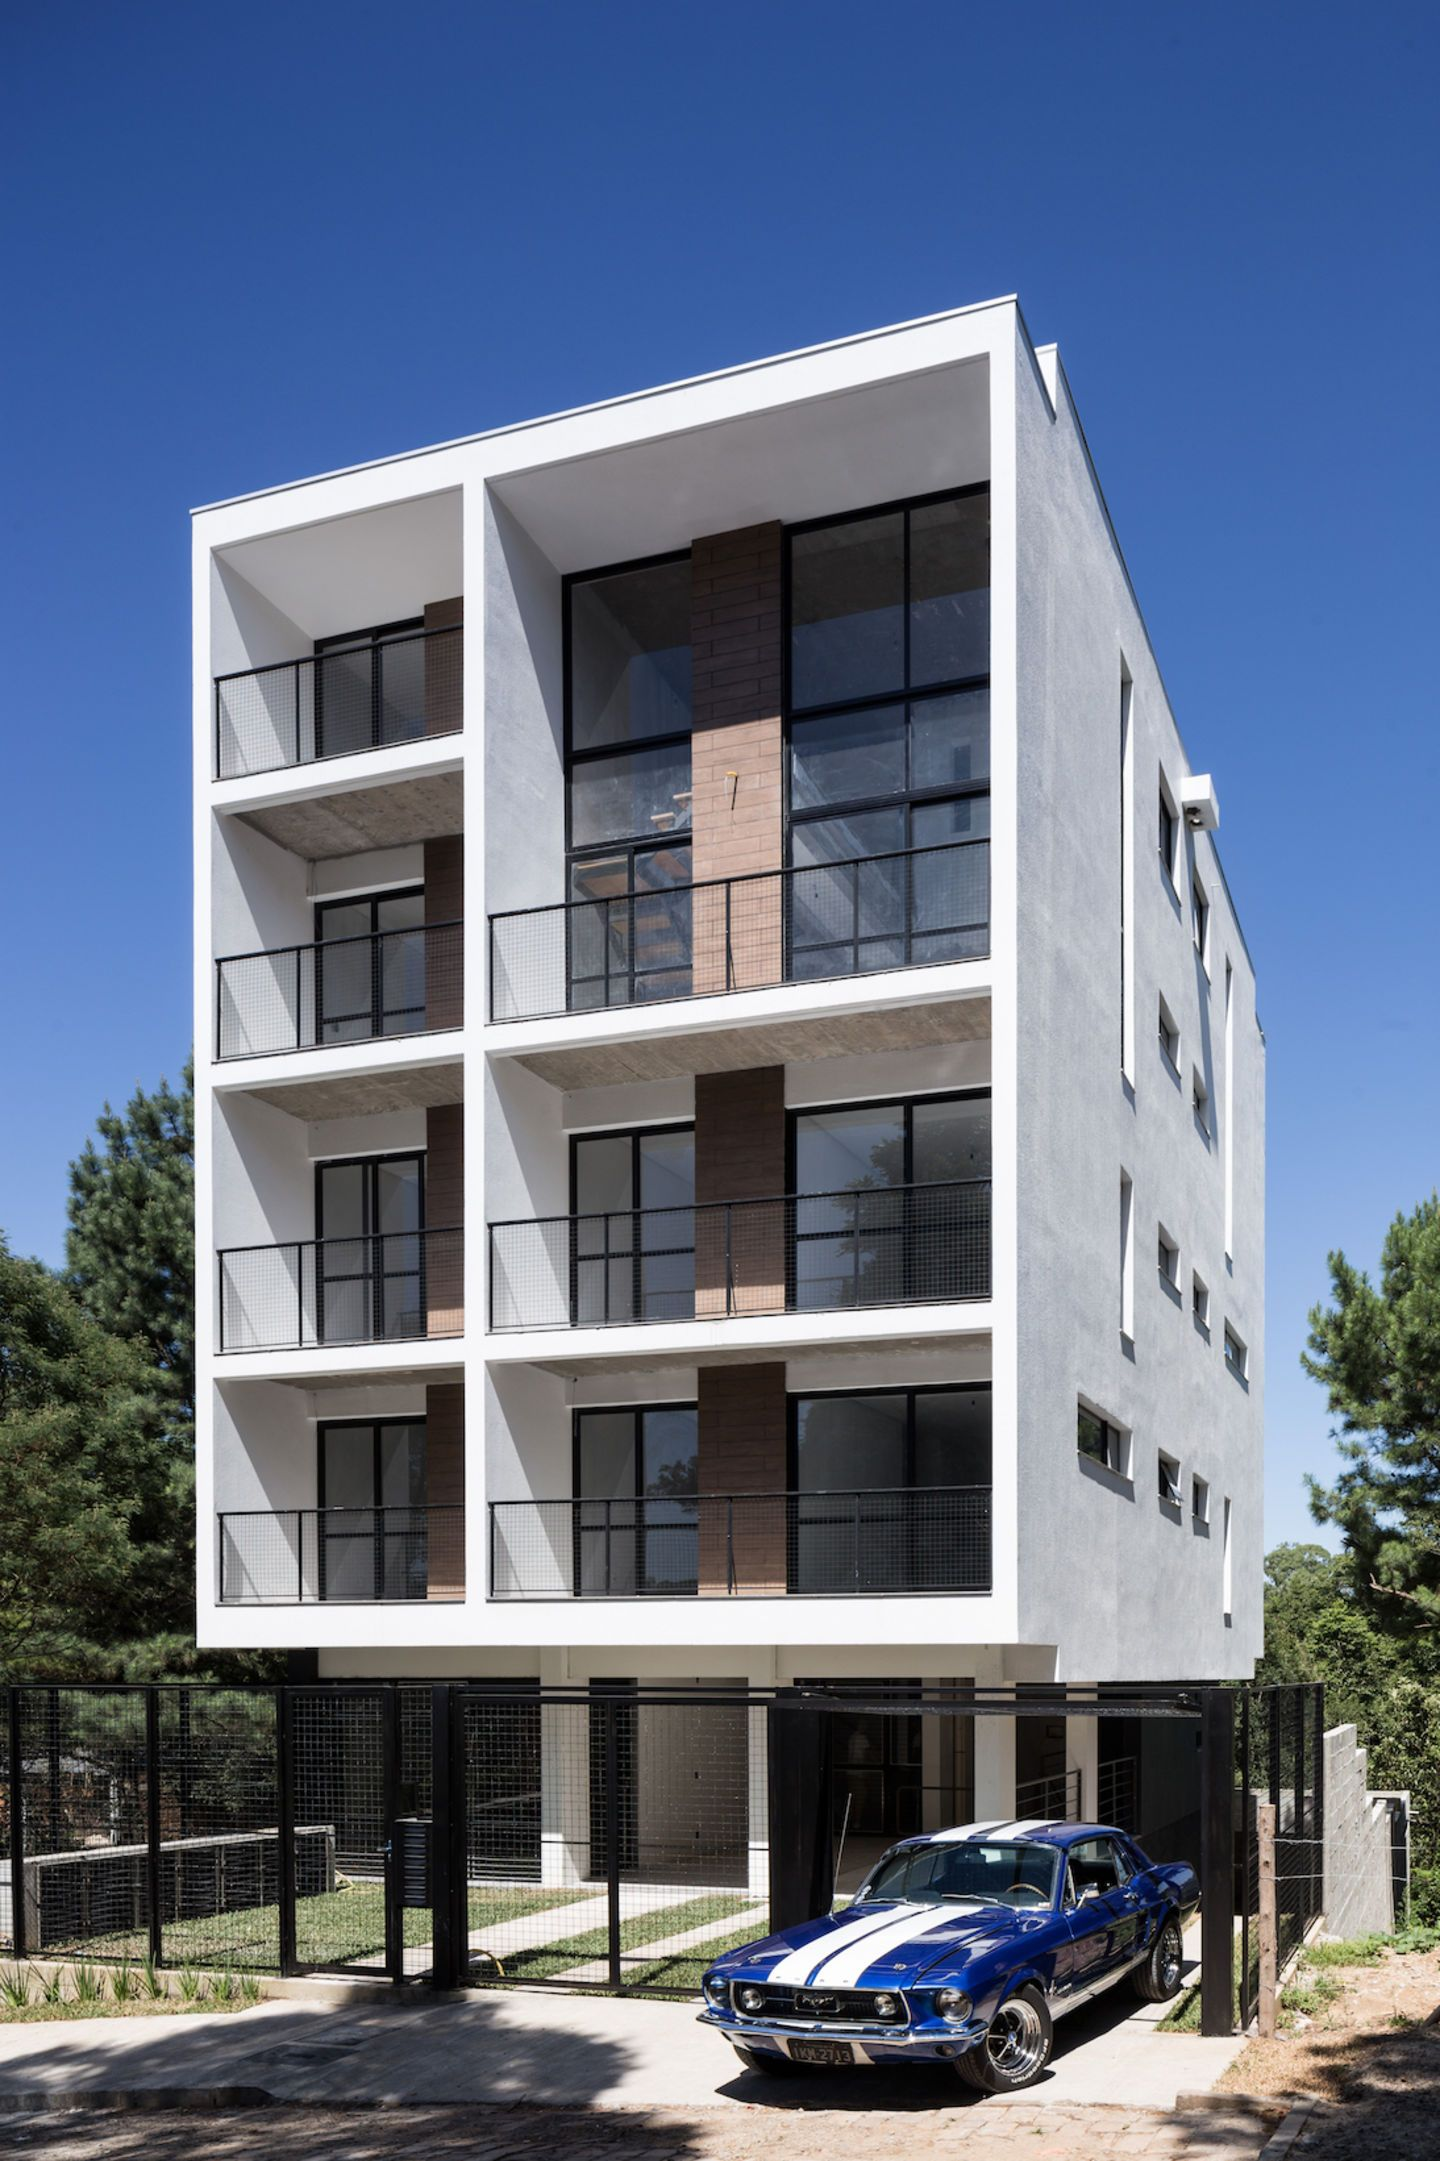 Quattro A Small Apartment Building Marked By Simple Lines And